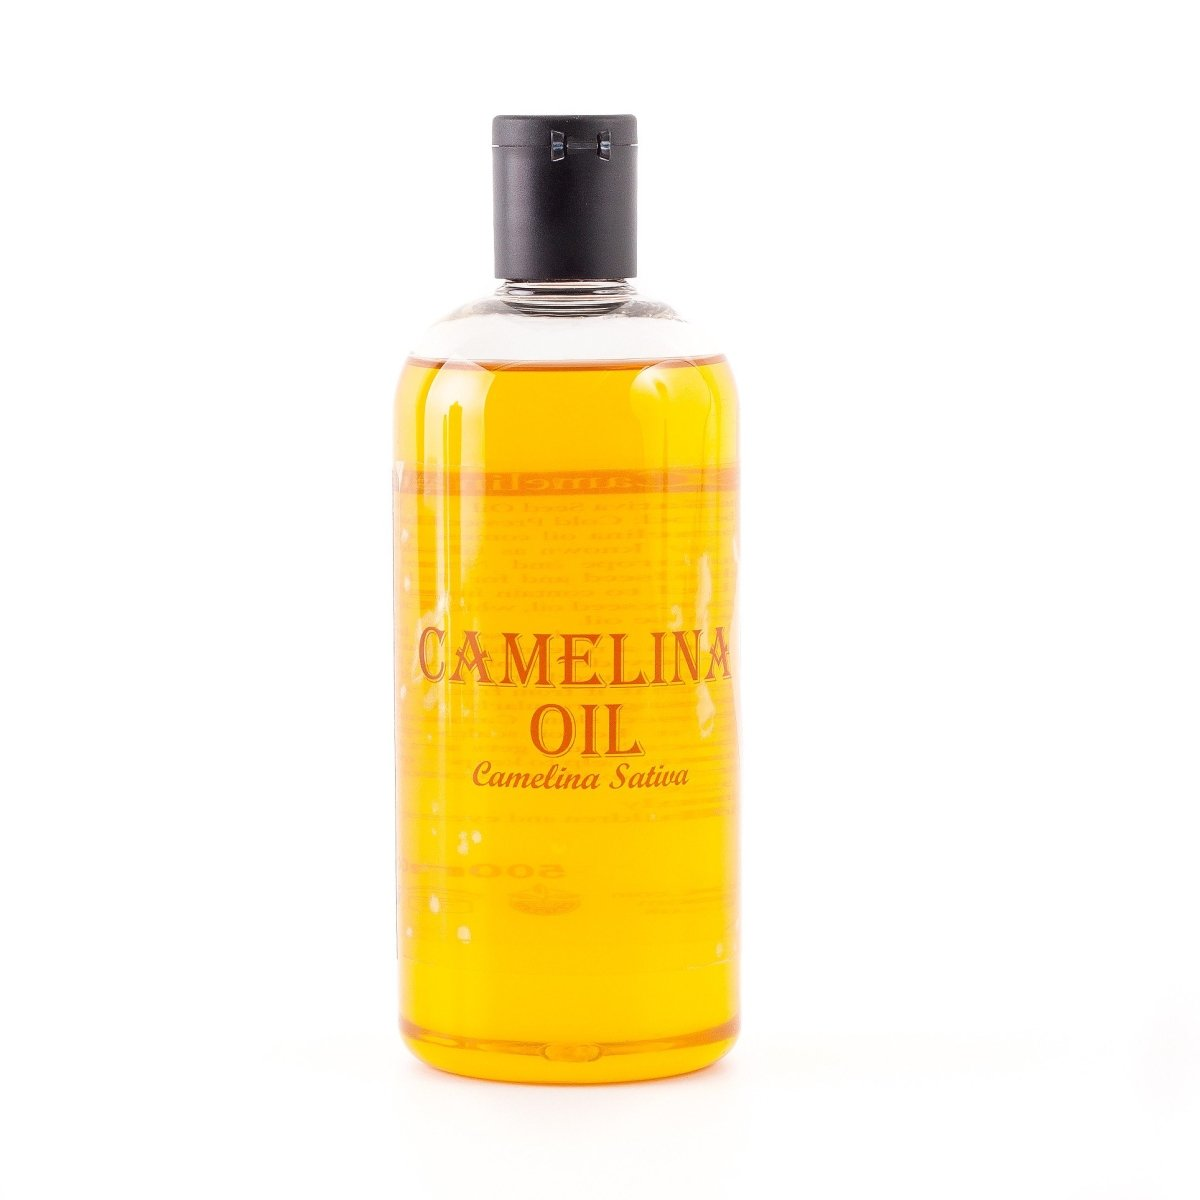 Camelina Virgin Carrier Oil - Mystic Moments UK